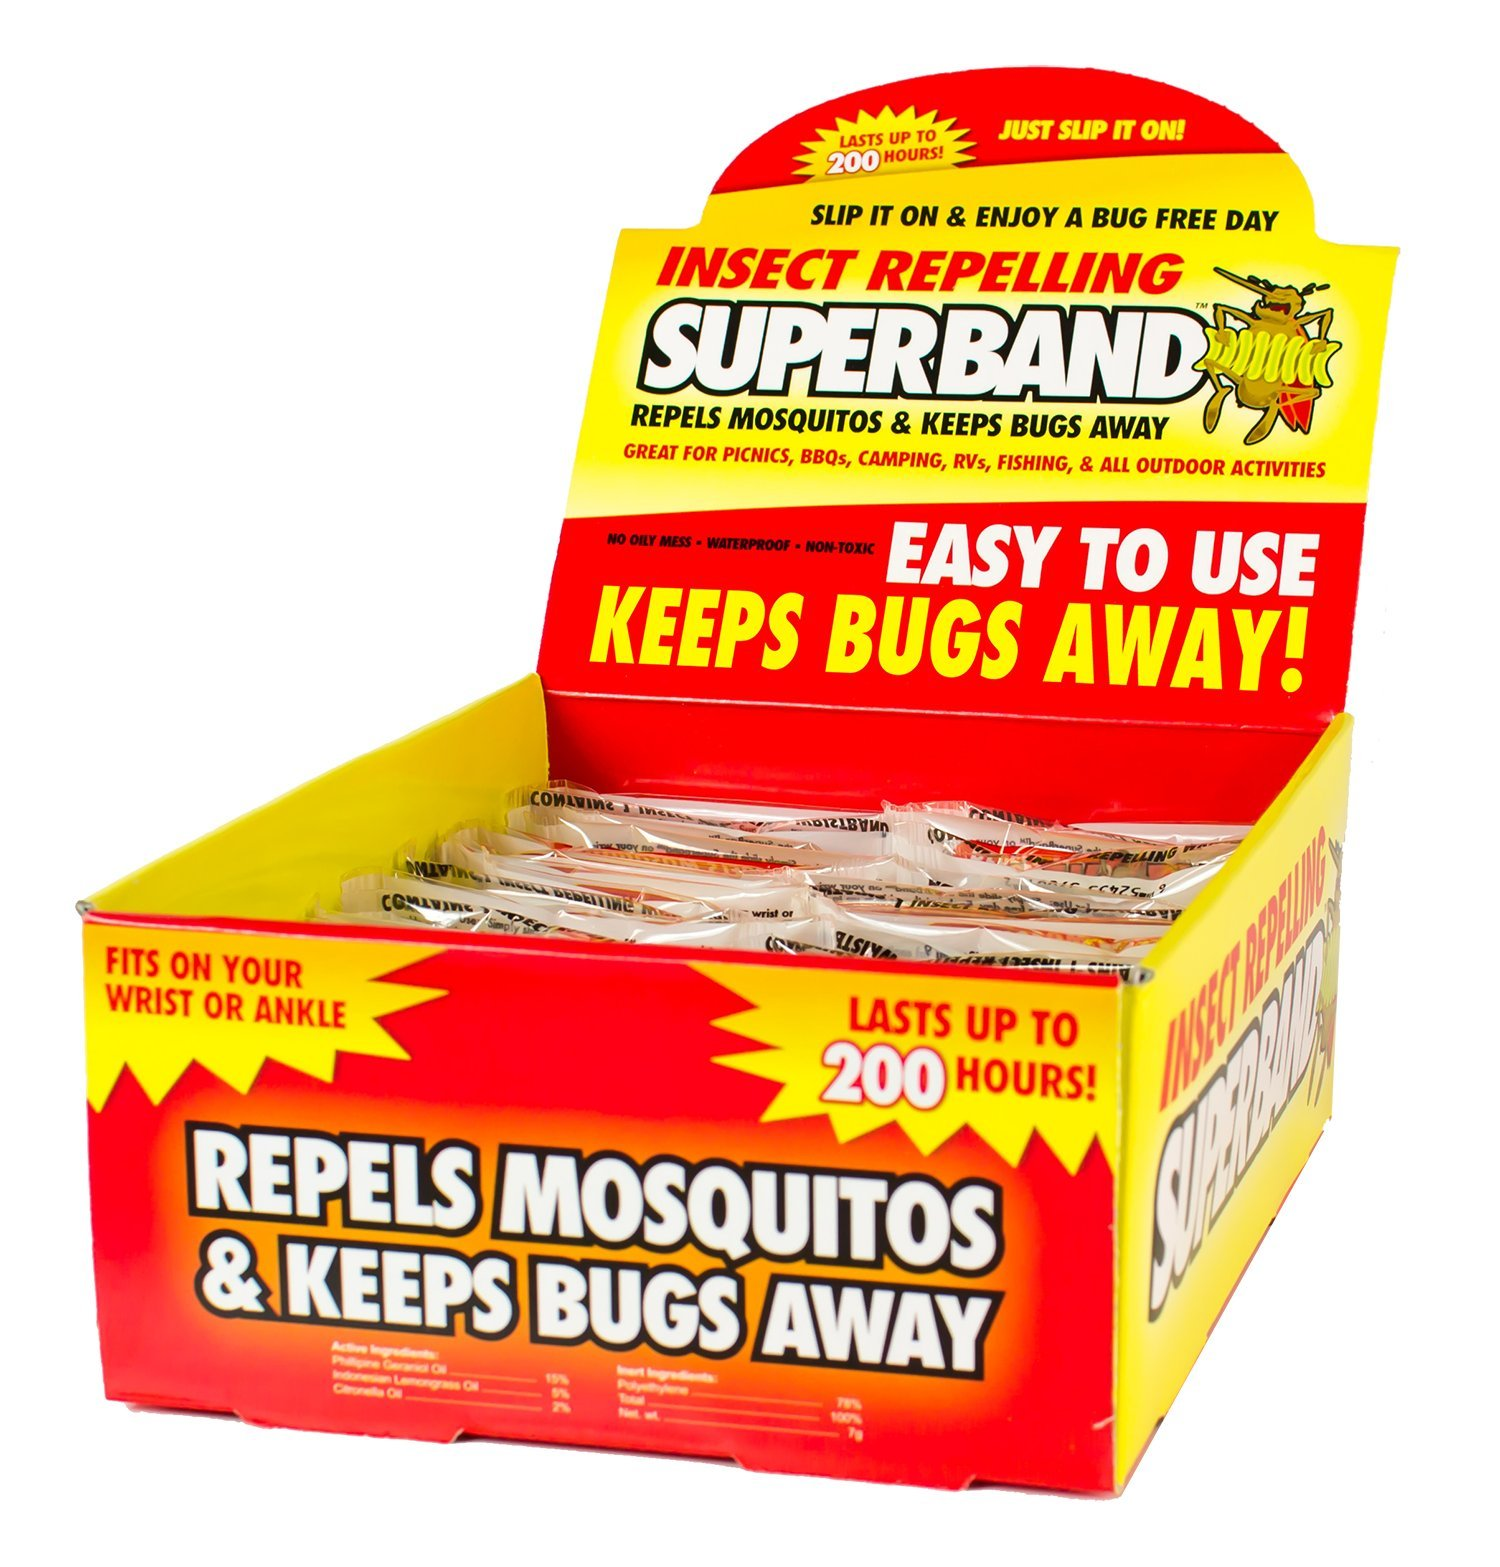 SUPERBAND 400 Pack All Natural Mosquito Repellent Bracelets - Guaranteed to Work - No Messy Lotions, Sprays, or Plastic - Fast & Easy! 30 Day Money Back Guarantee by Superband (Image #7)